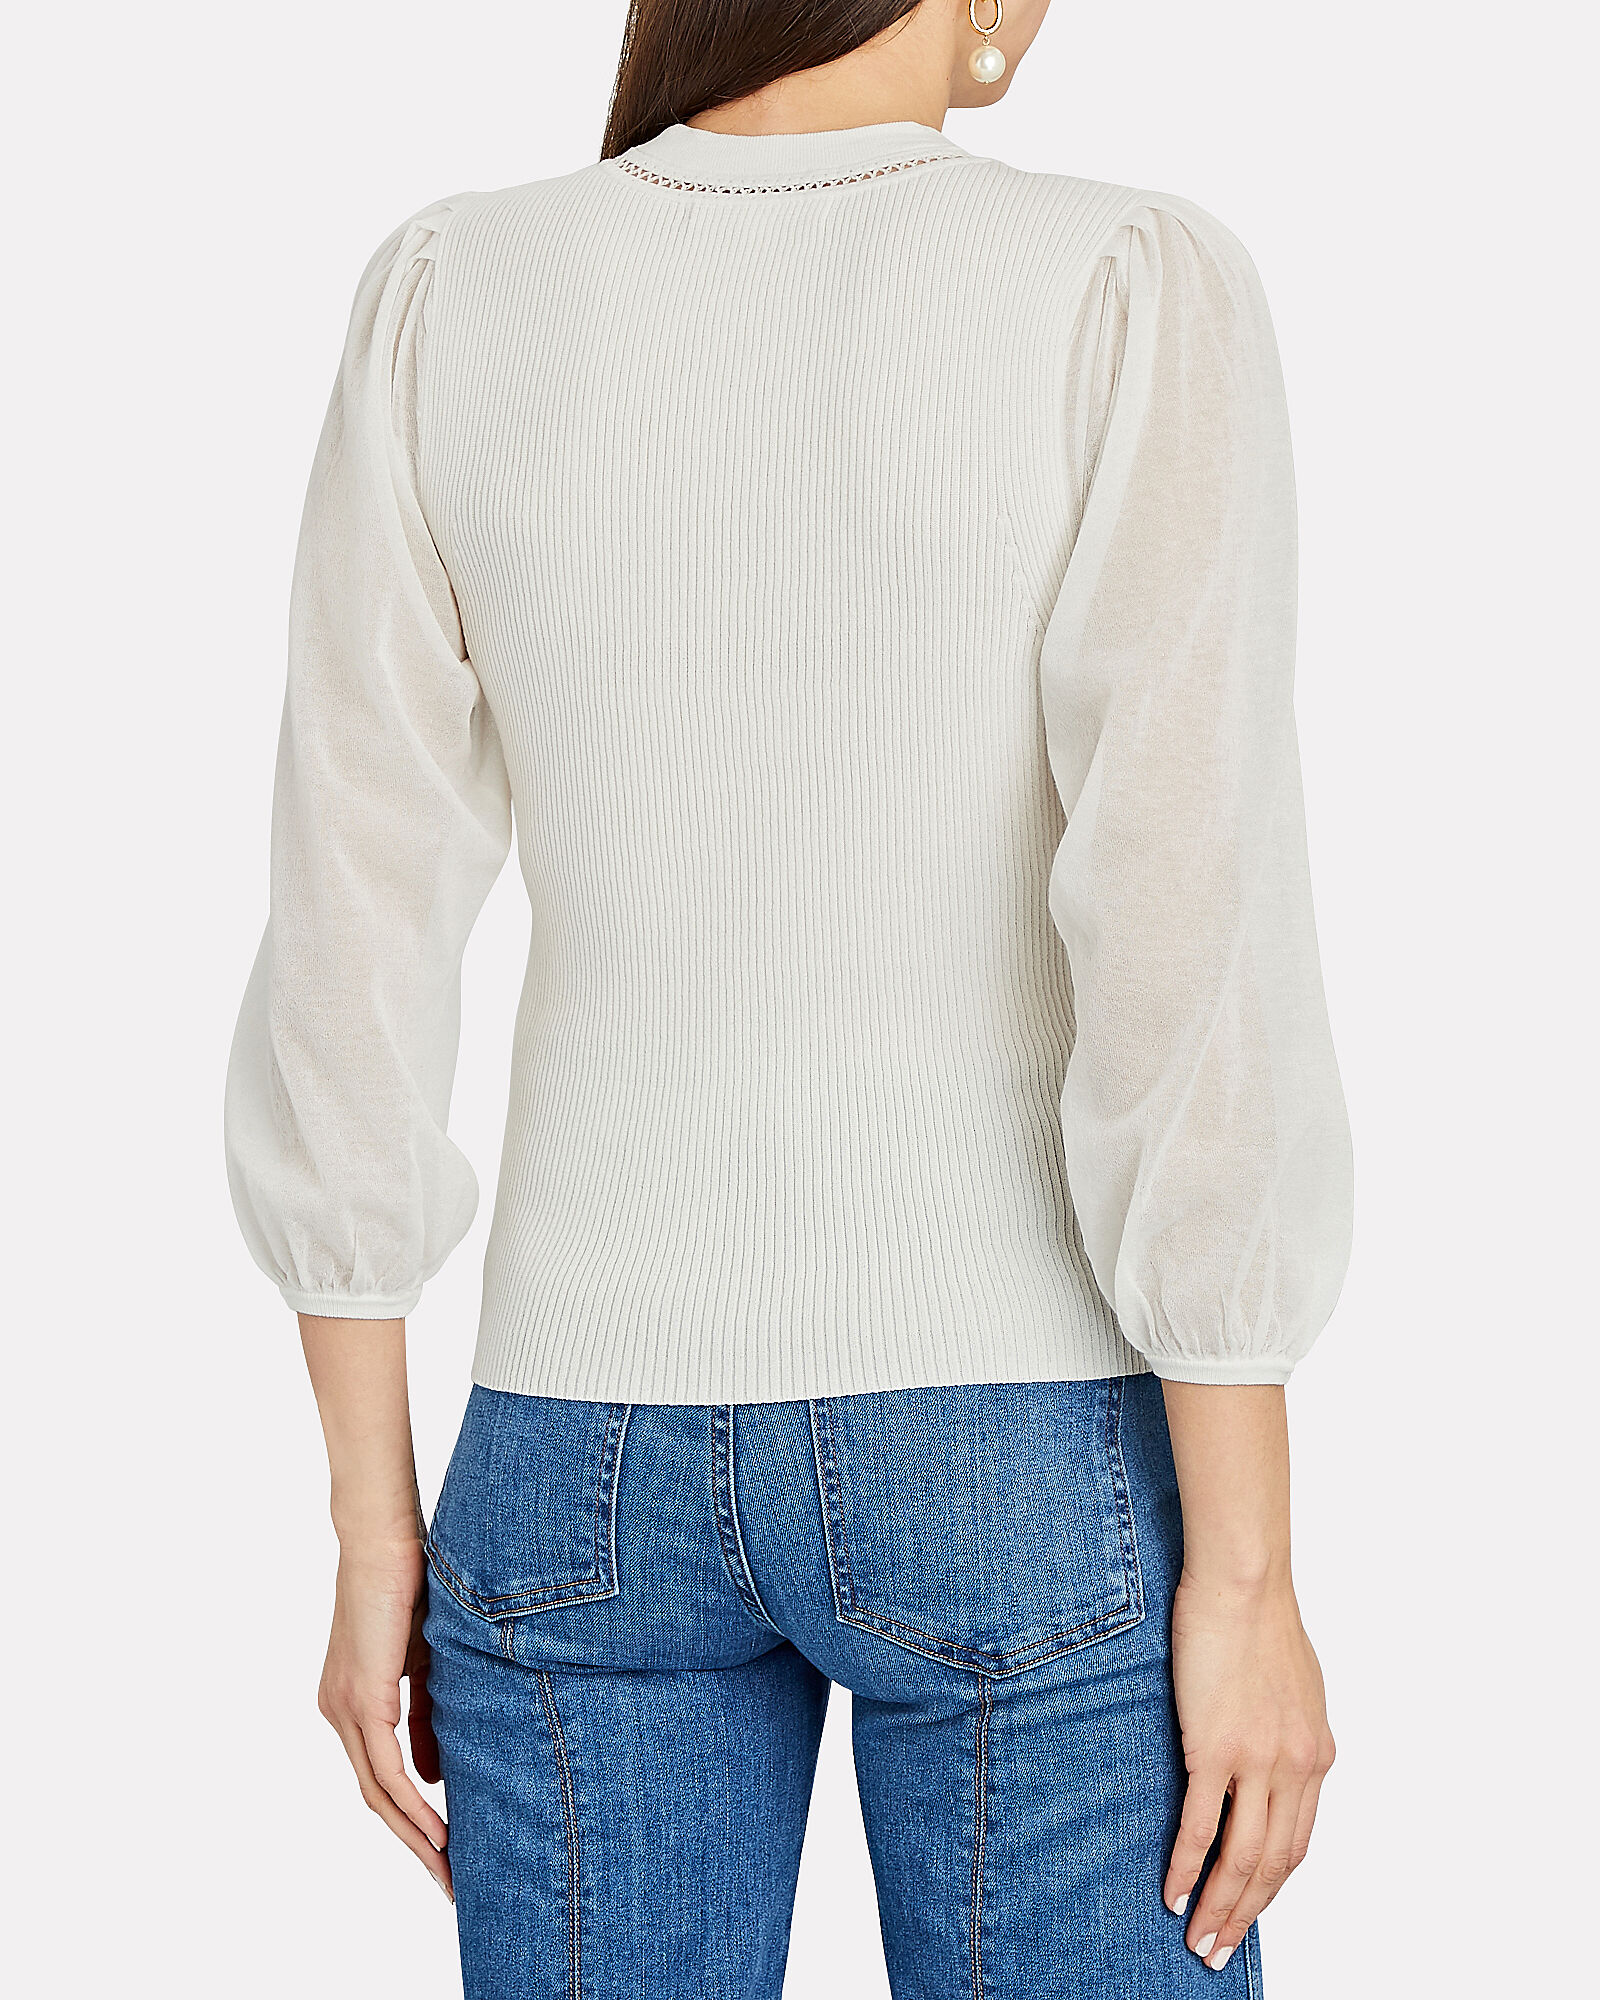 Veronica Puff Sleeve Cotton Sweater, WHITE, hi-res